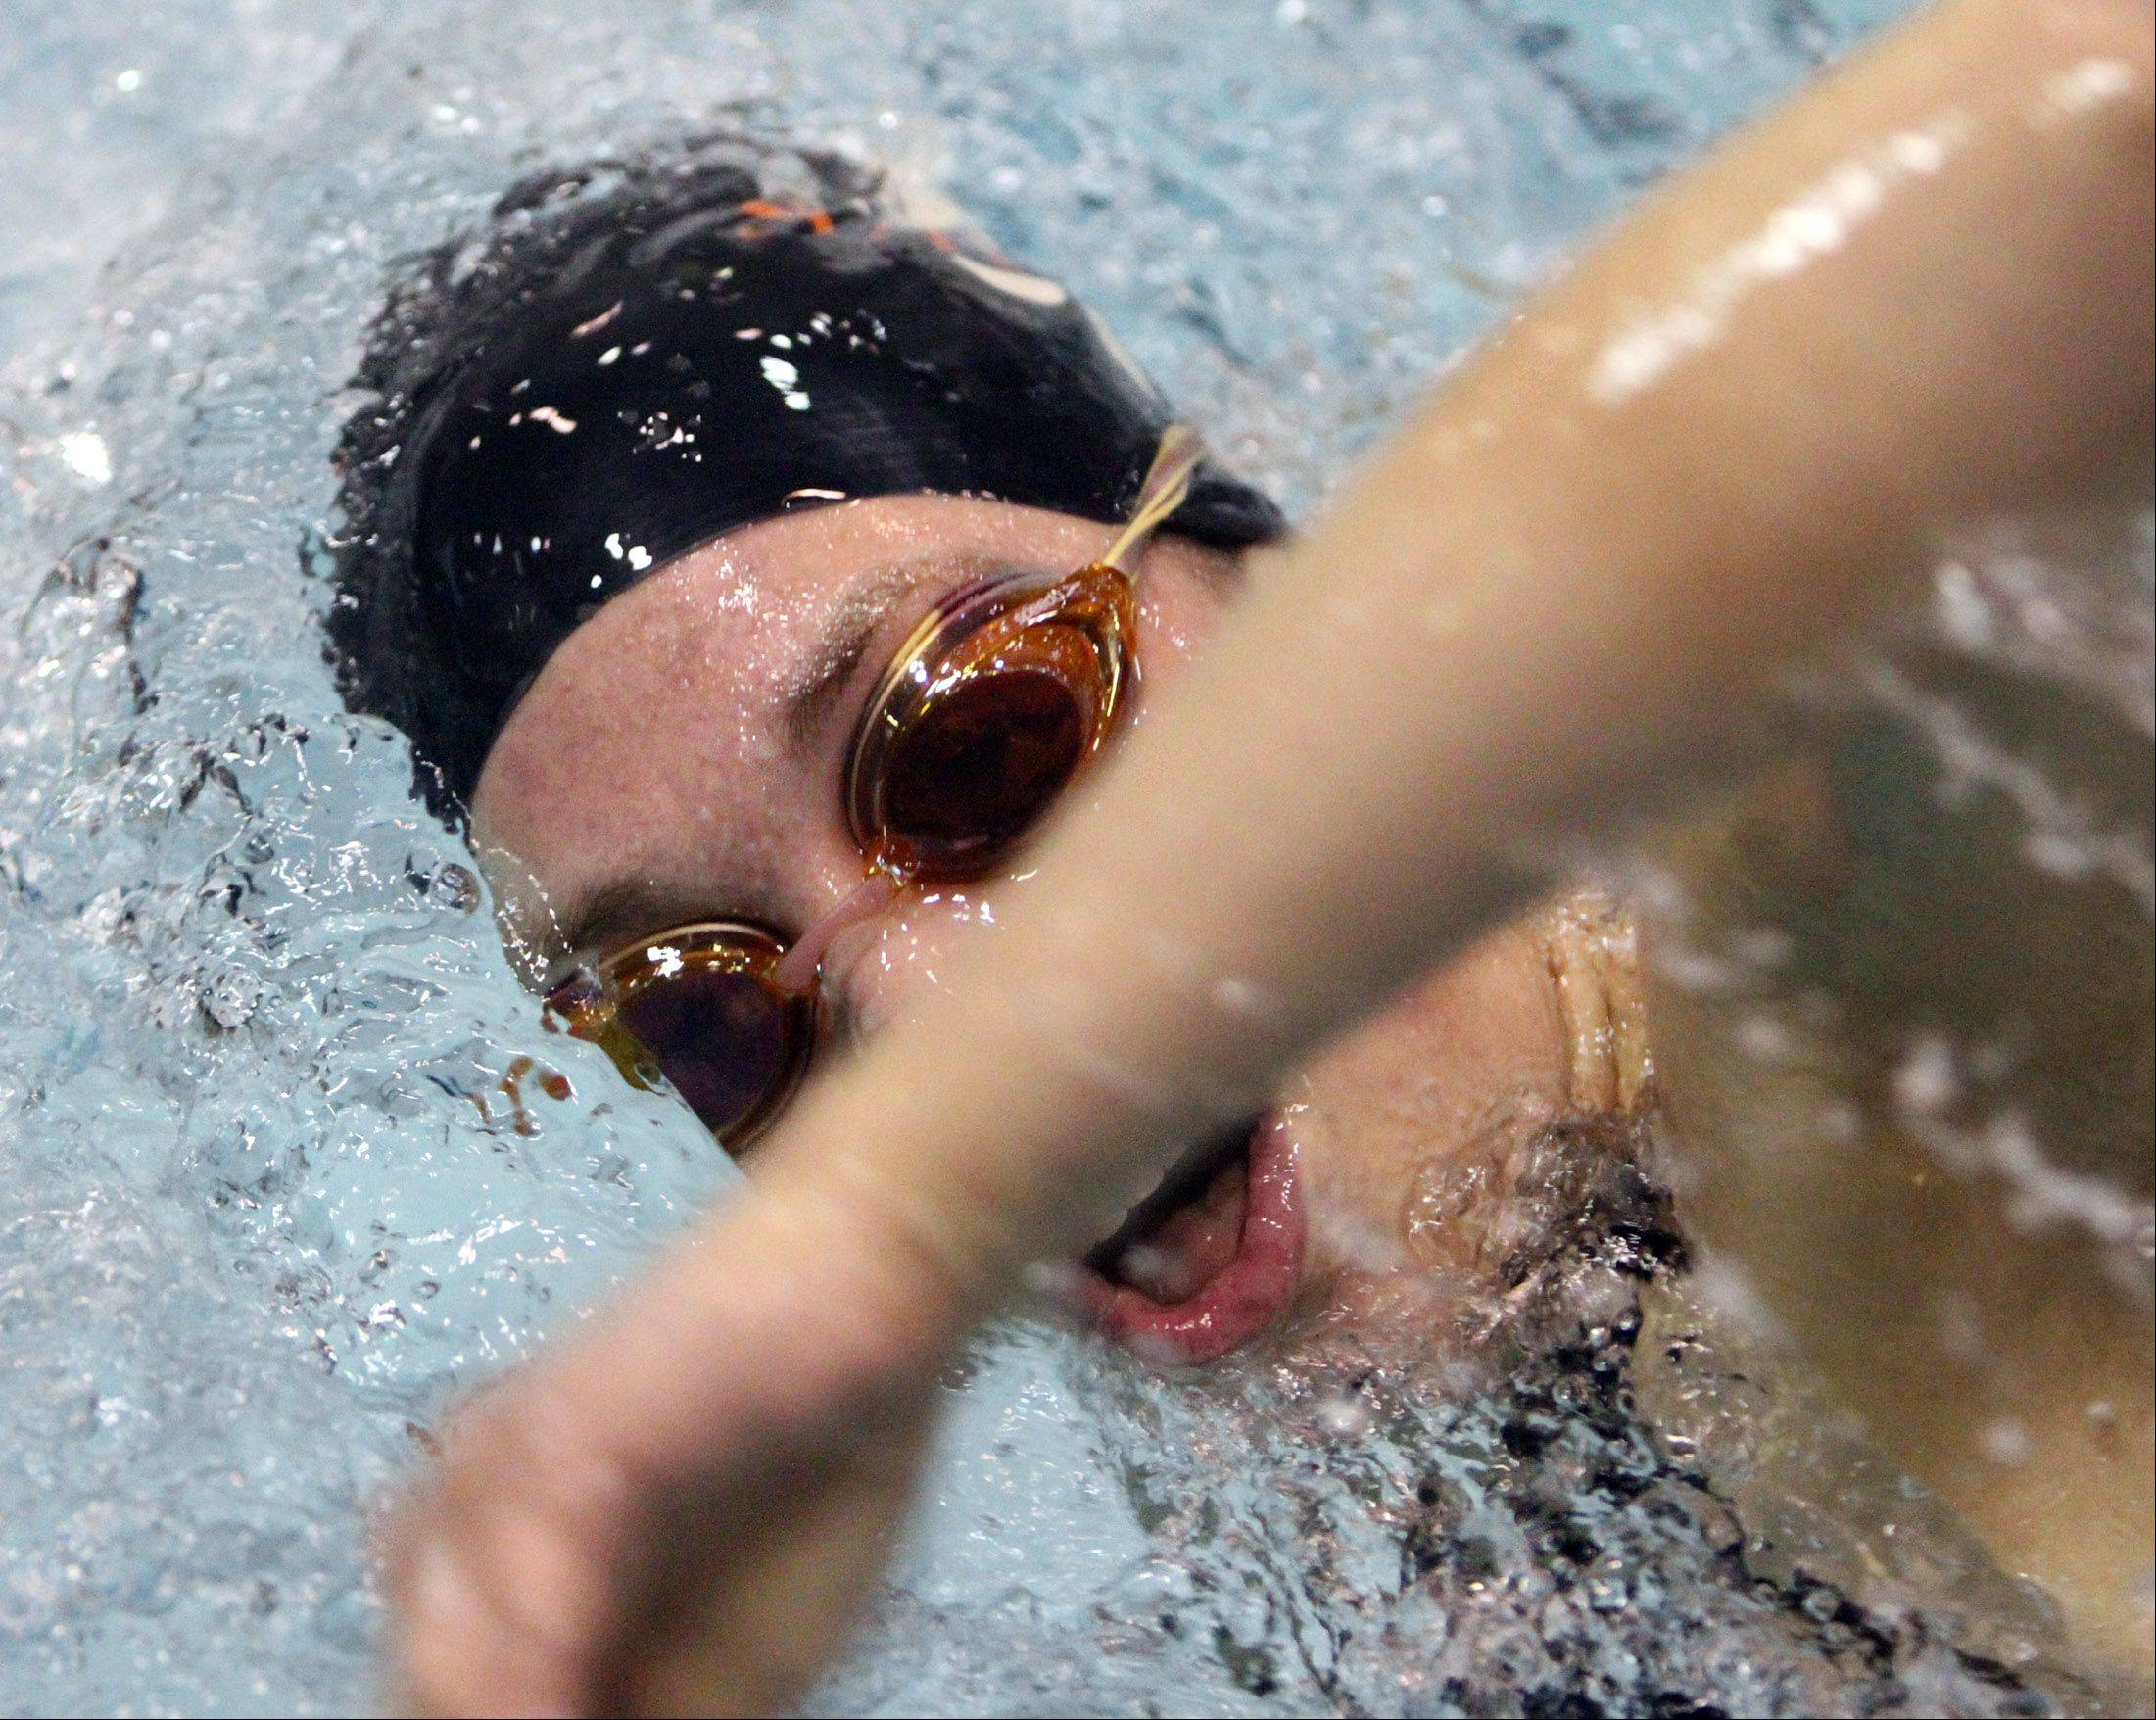 St. Charles East's Izzie Bindseil competes in the 200-yard freestyle at IHSA state final preliminaries in Winnetka on Friday, November 18th.